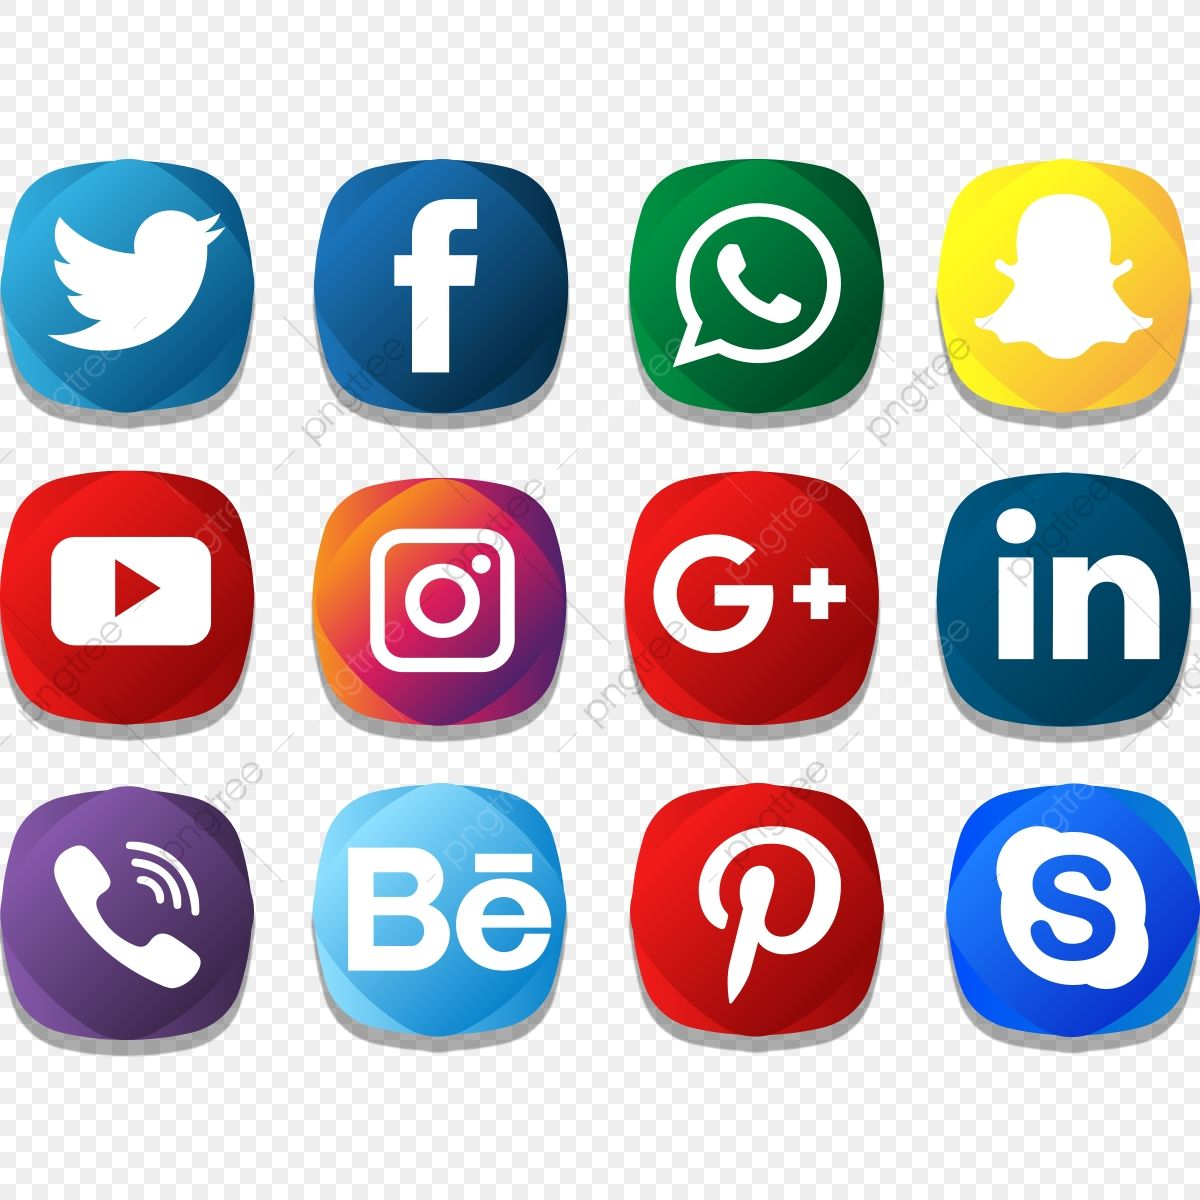 Social Icon Creative Color Pack Social Media Clipart Social Media Icons Social Media Png And Vector With Transparent Background For Free Download Social Icons Social Media Icons Social Media Logos